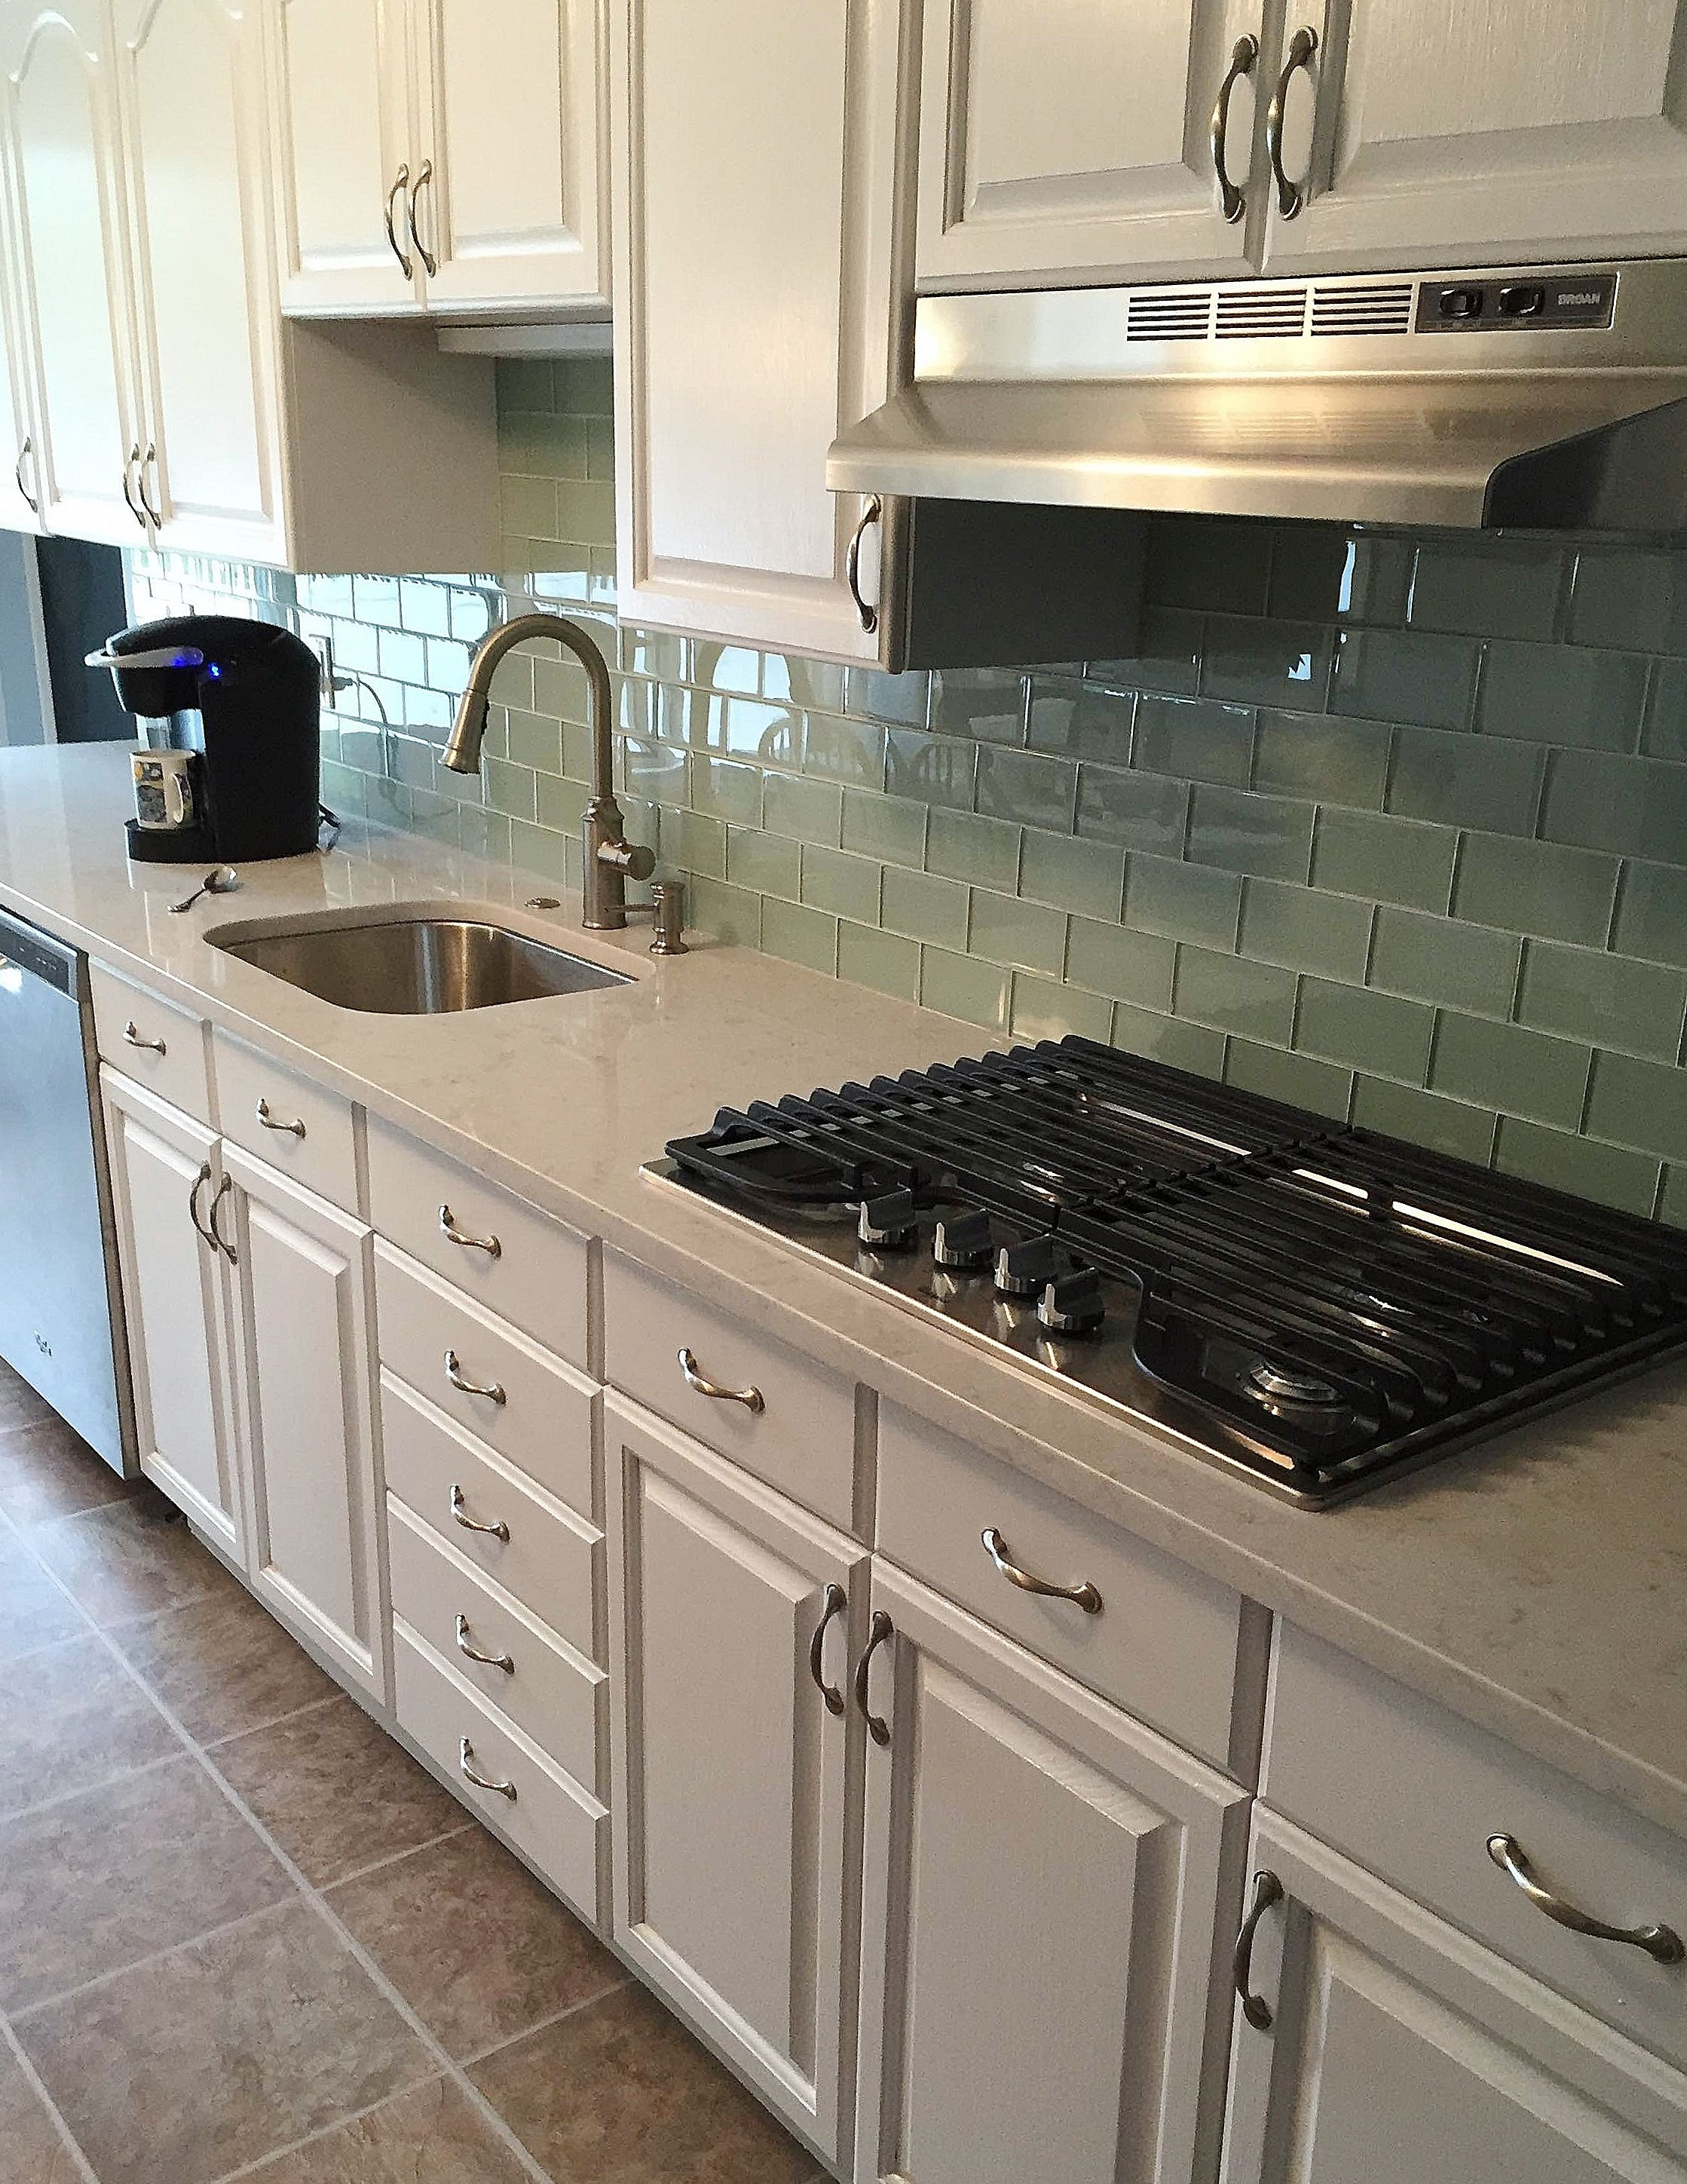 Discount Granite Countertops Nj Silestone Lagoon Quartz Countertops With A Soft Blue Glass